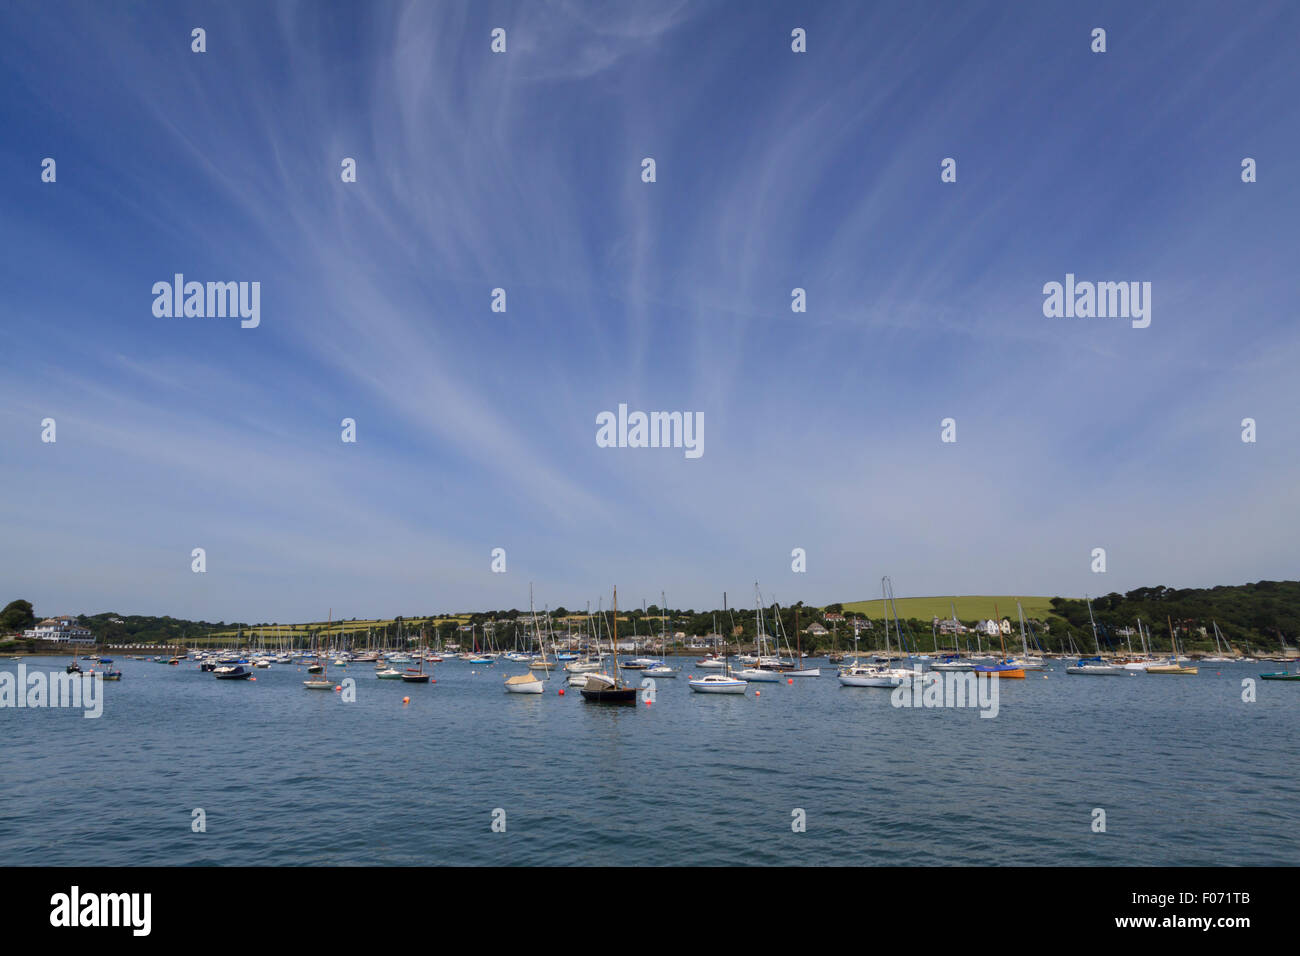 Small boats moored under a clear blue sky in Falmouth harbour, Falmouth, Cornwall Stock Photo